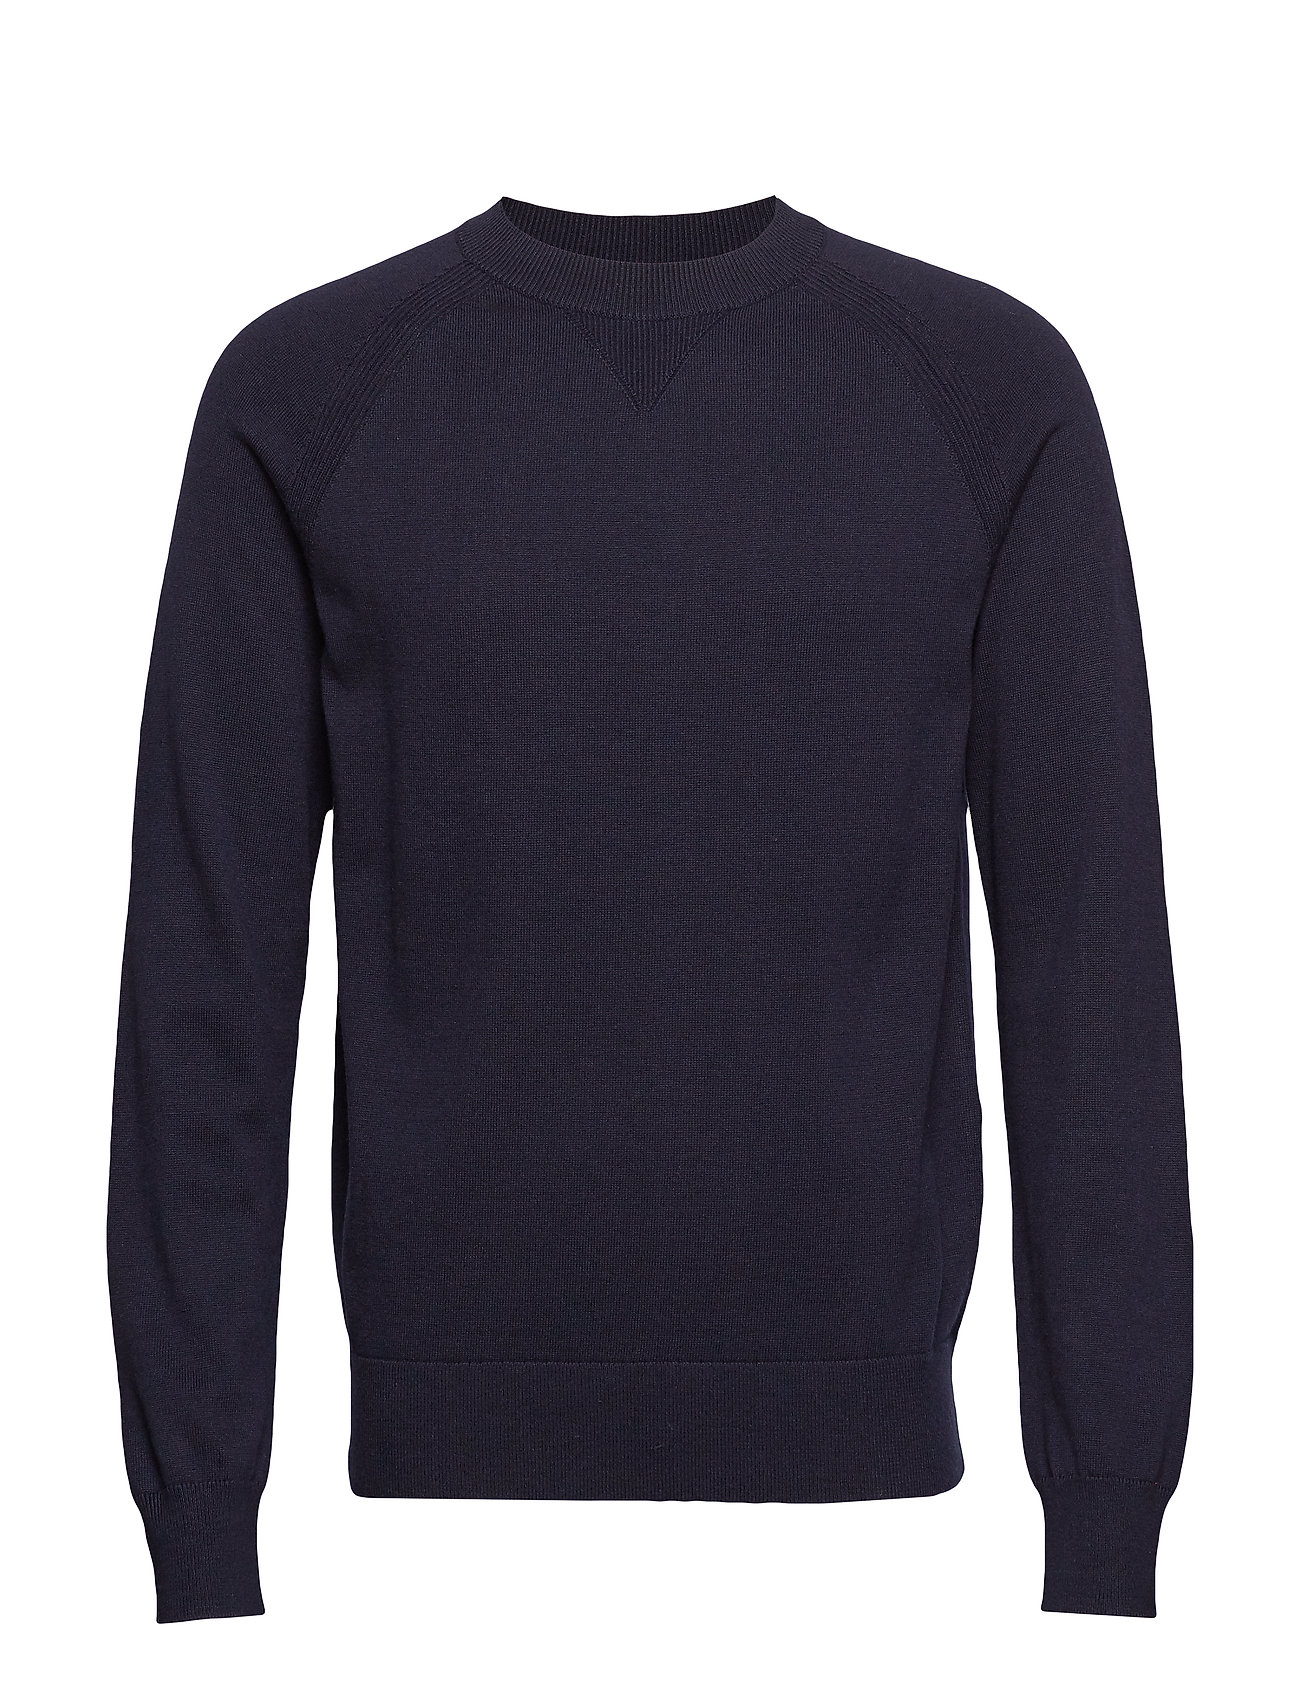 Filippa K M. Cotton Cashmere Knitted Swe - NAVY